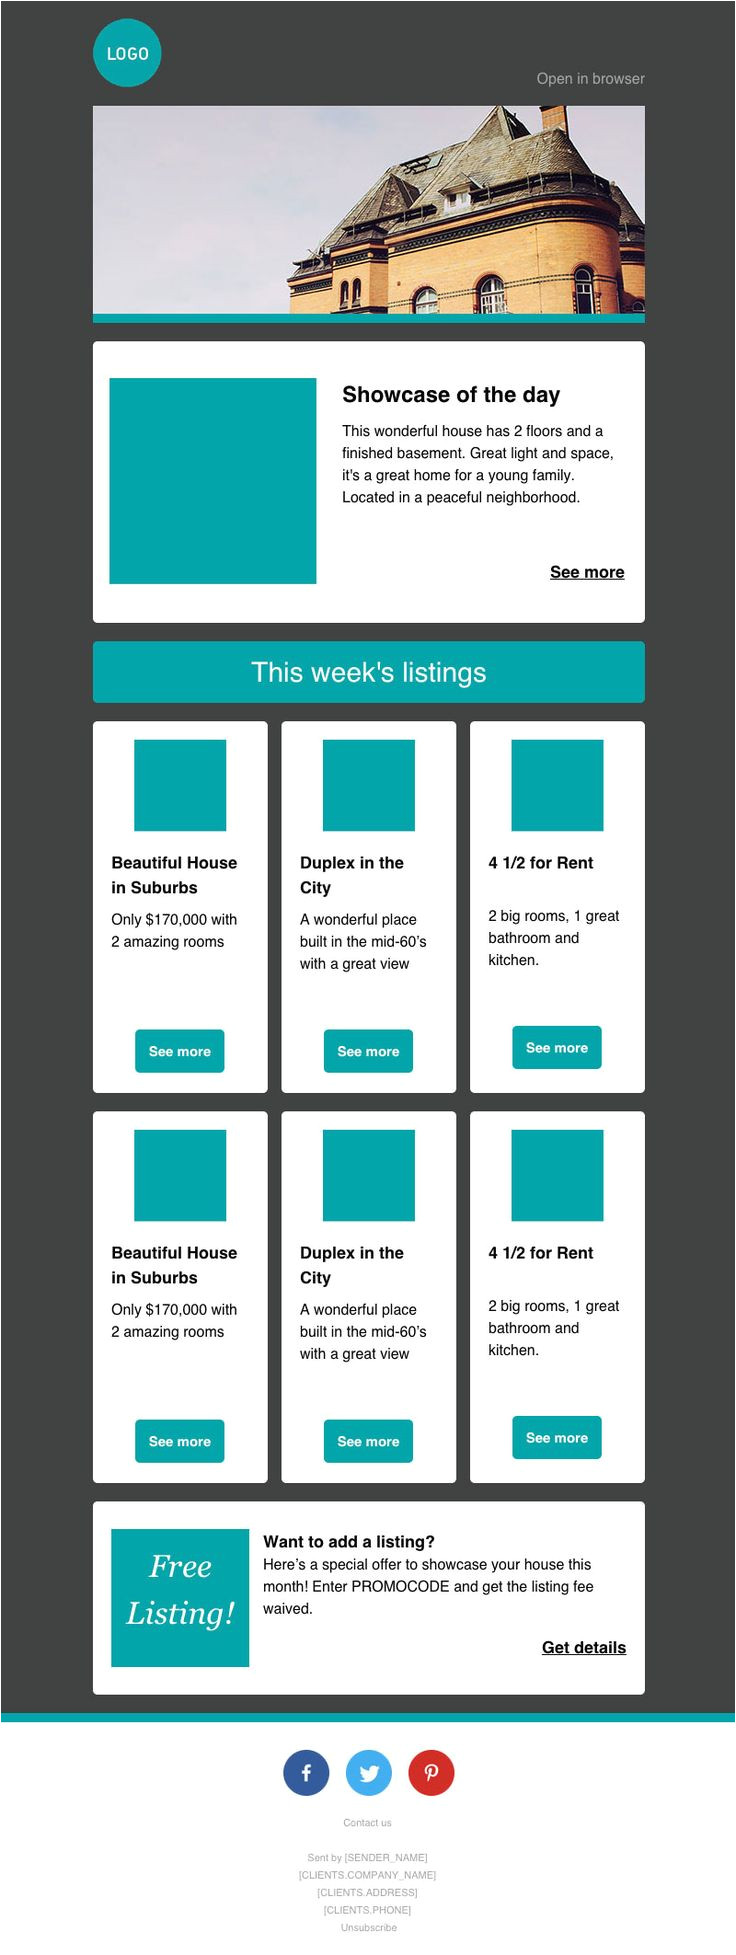 Free Online Newsletter Templates for Email 17 Best Ideas About Free Email Templates On Pinterest